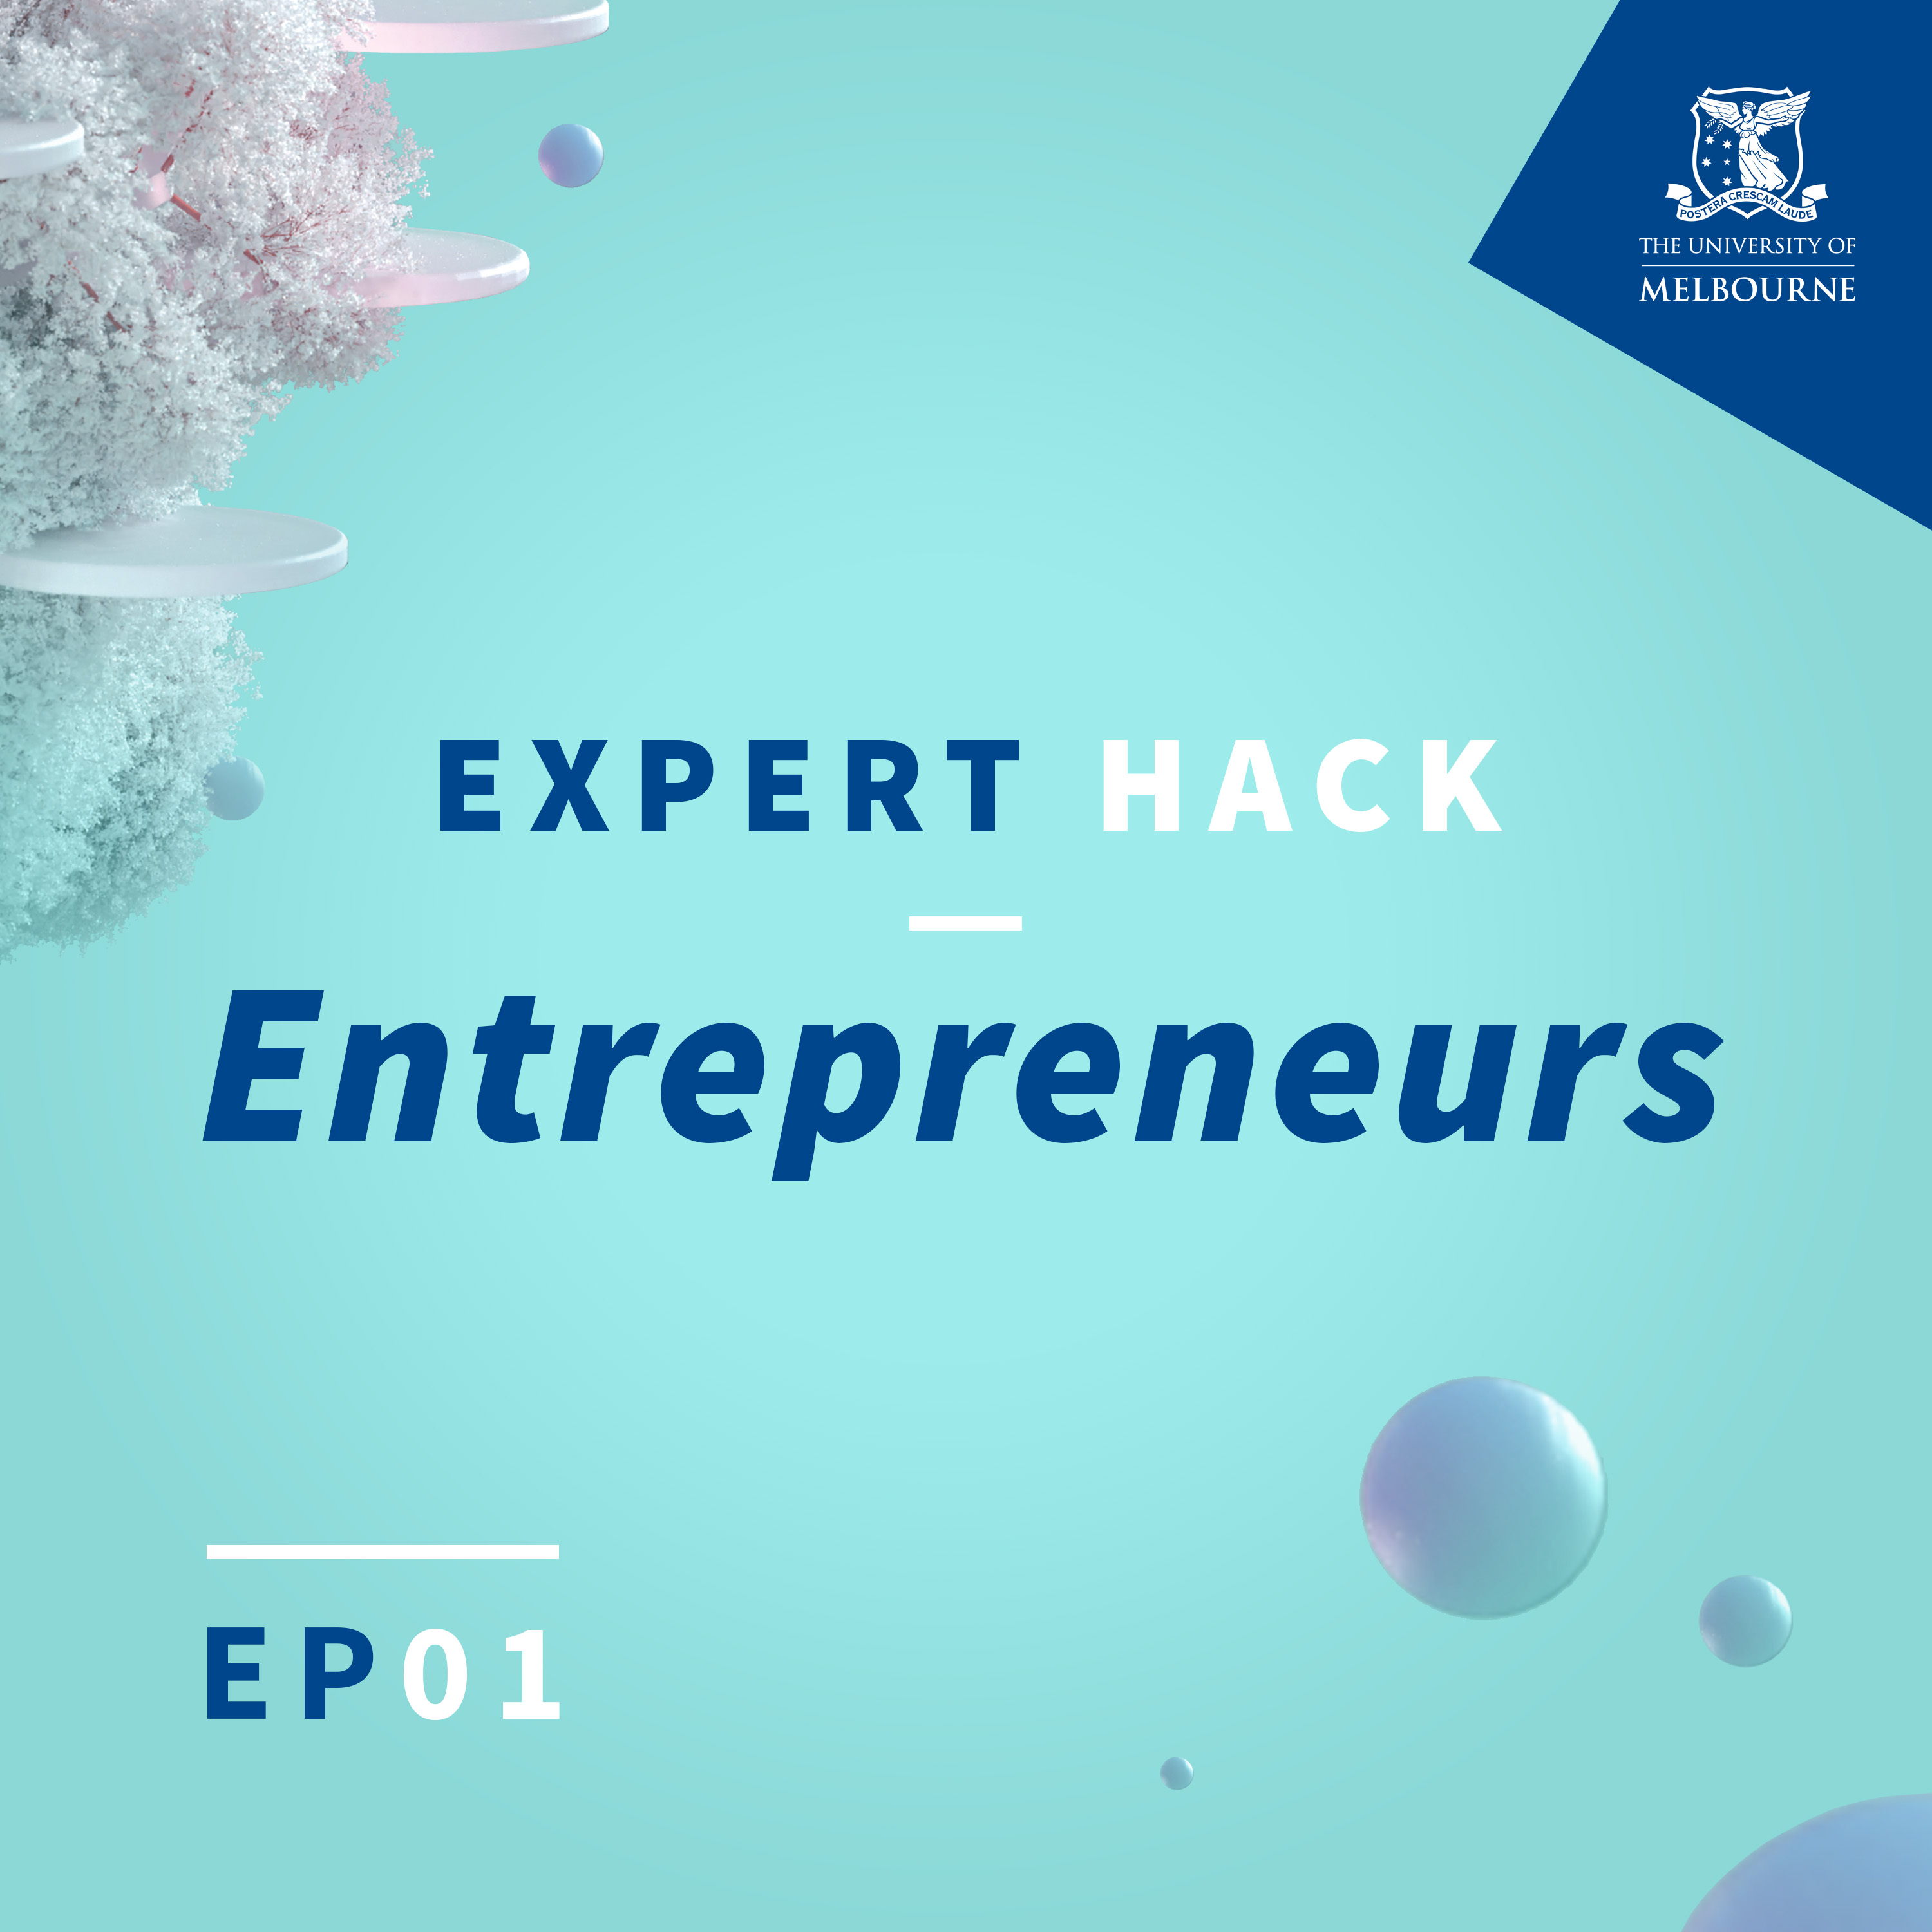 Expert Hack episode 01 artwork